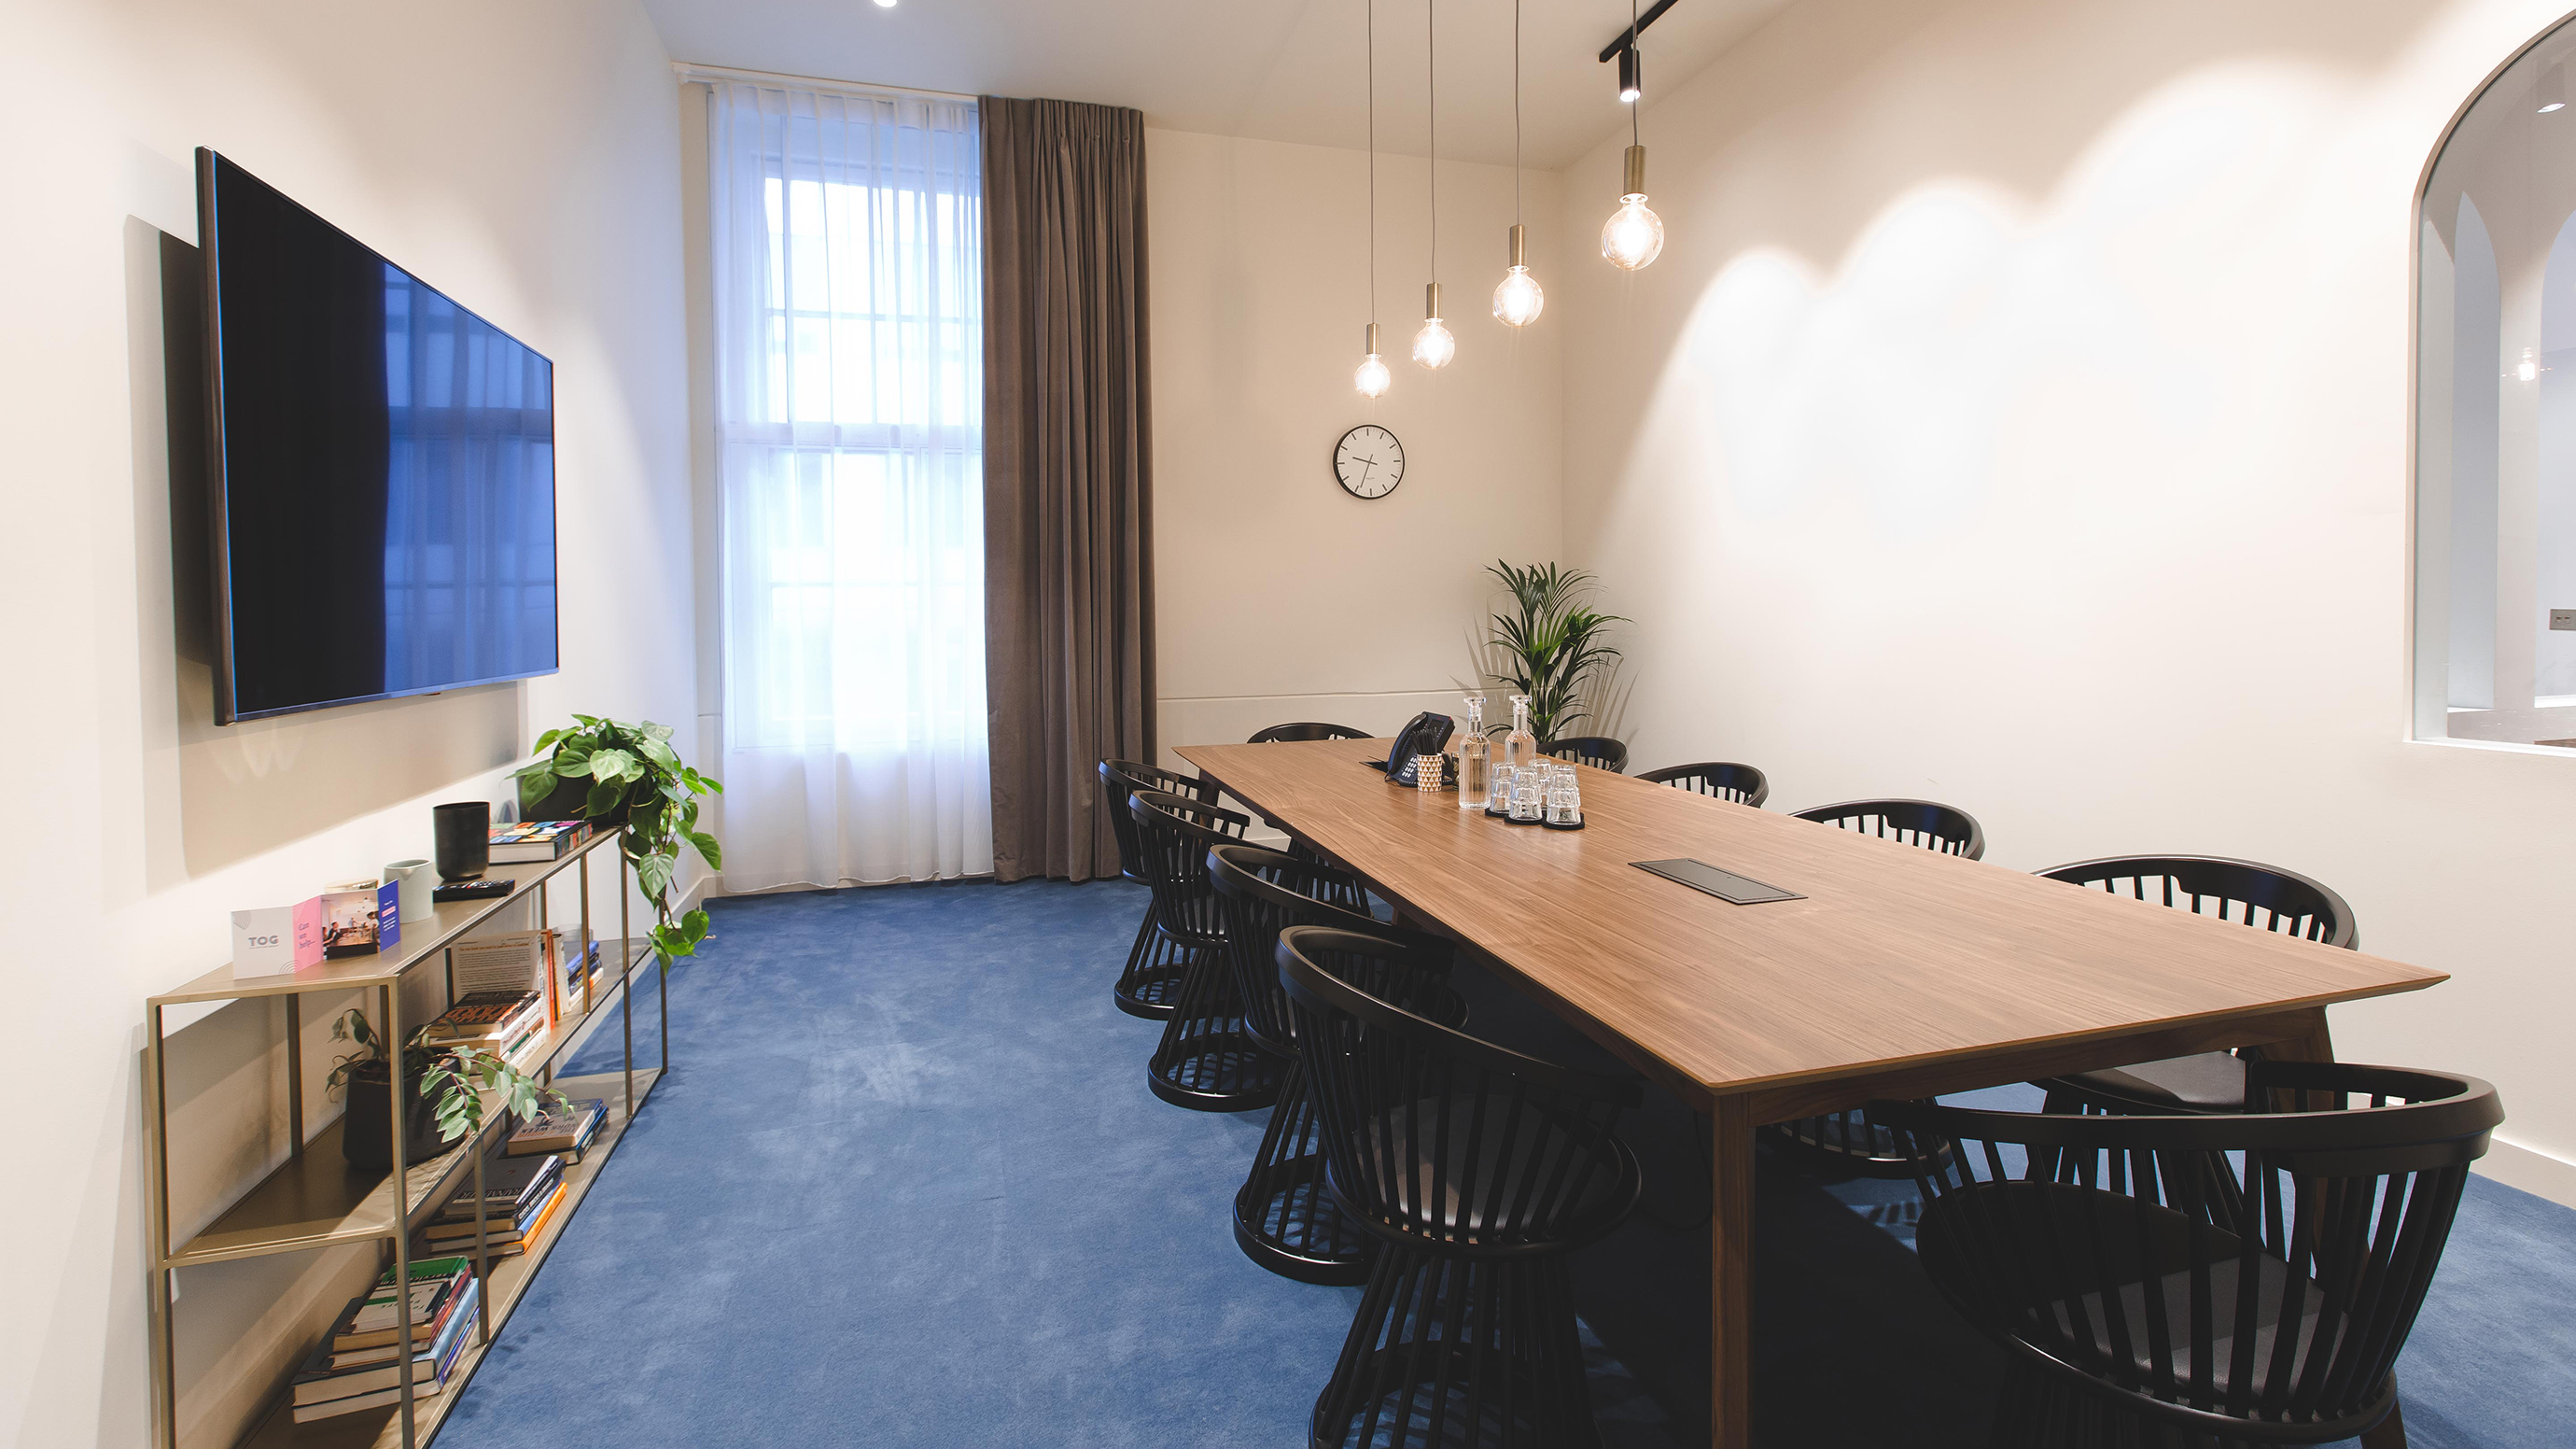 Medium meeting room with brown wooden table black chairs tv screen and shelves at TOG building Belle House London